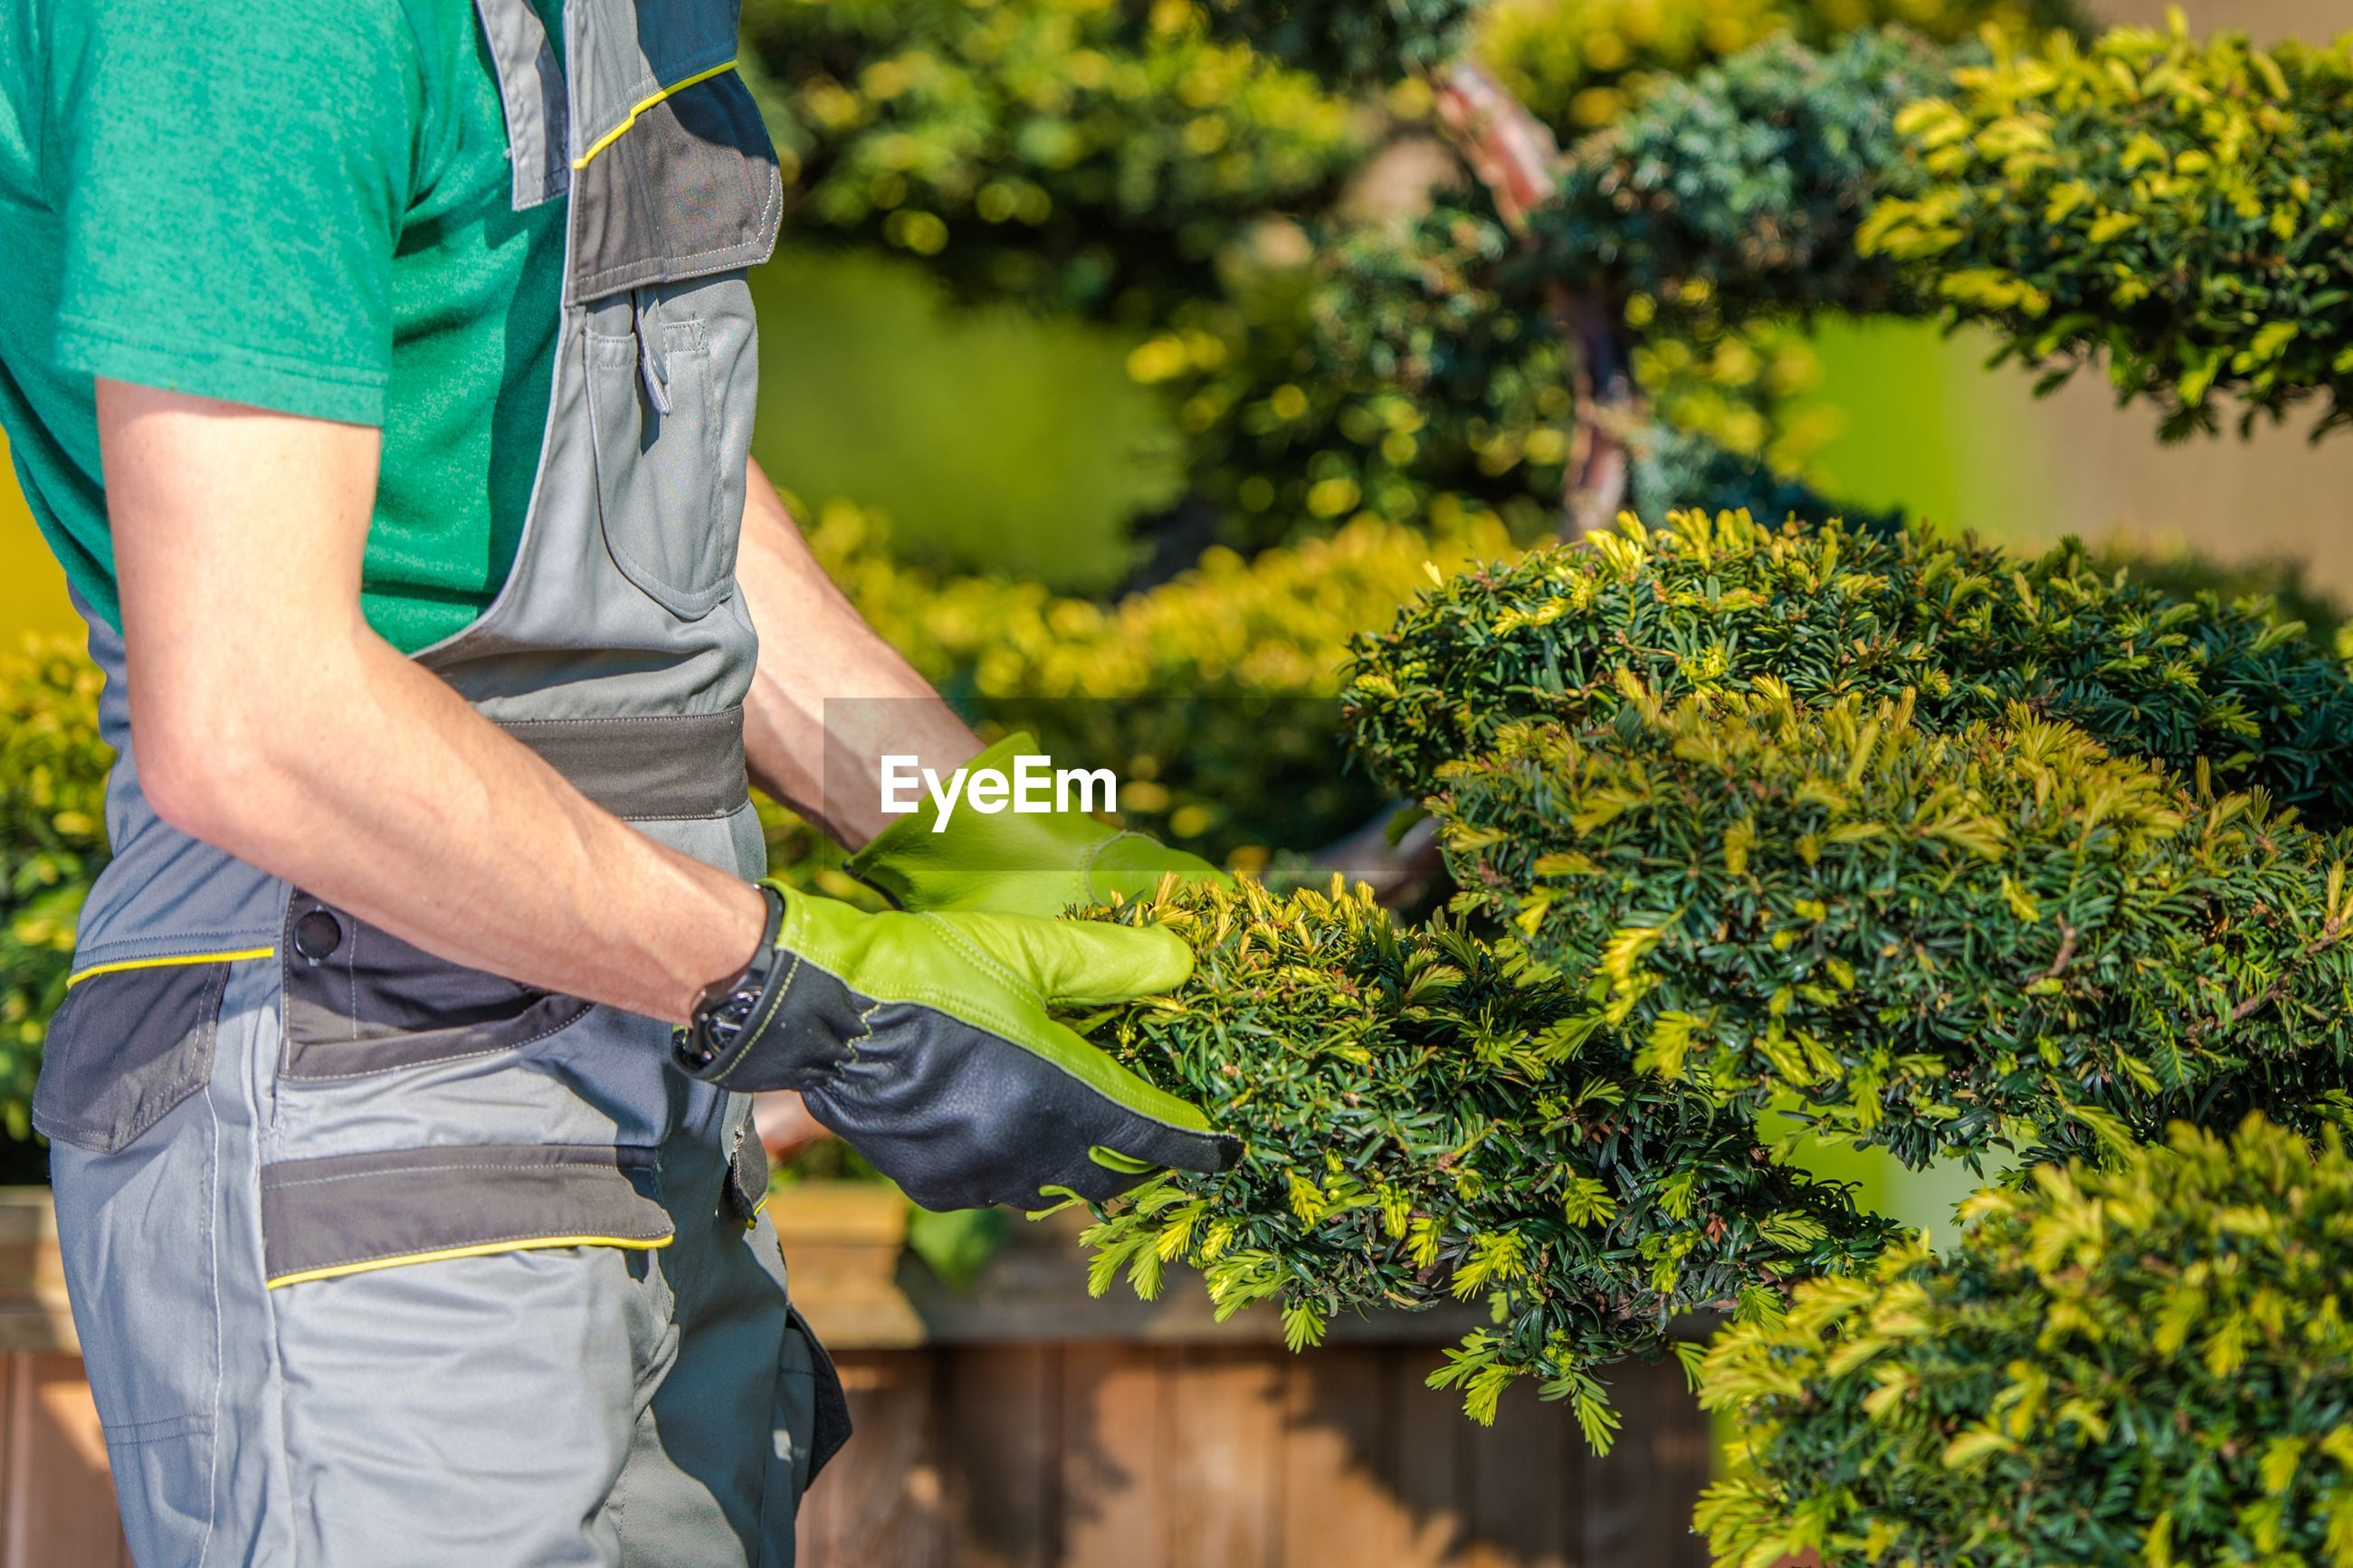 Midsection of man gardening in yard